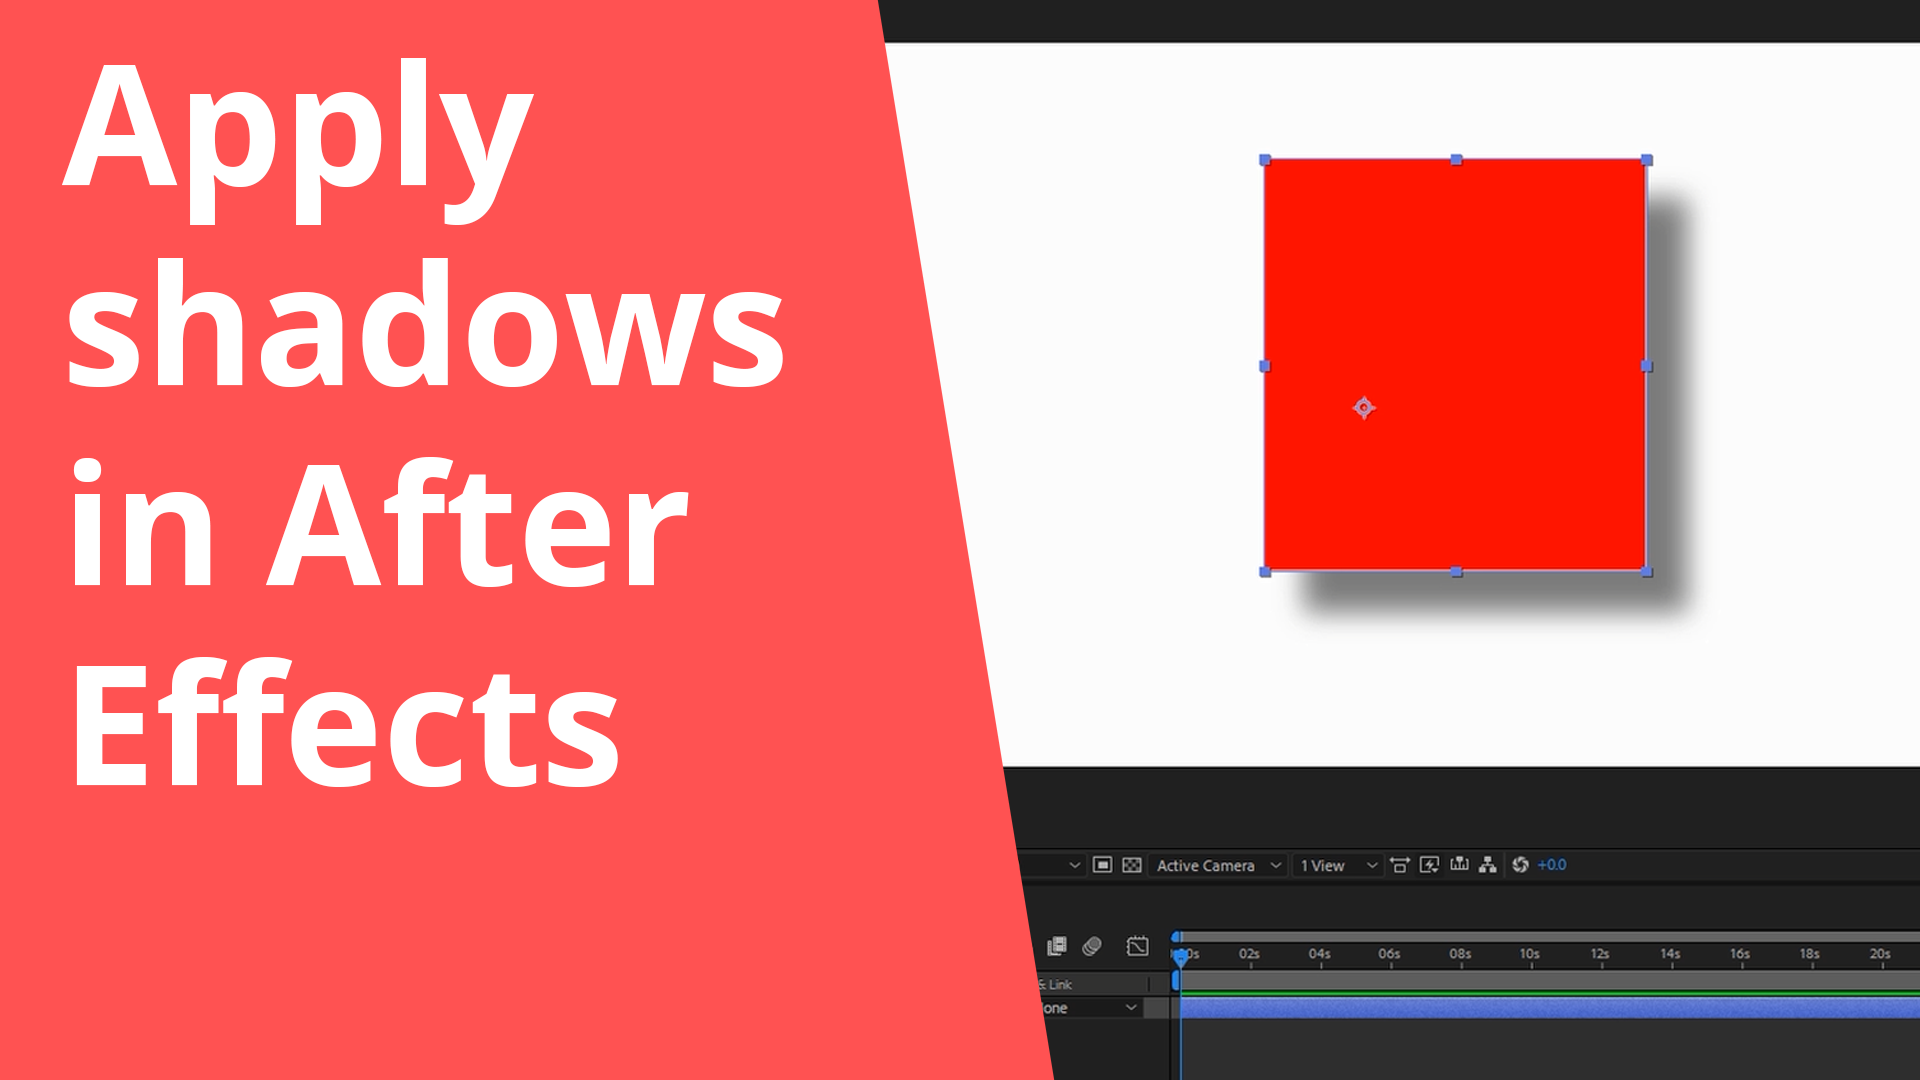 Apply shadows in After Effects